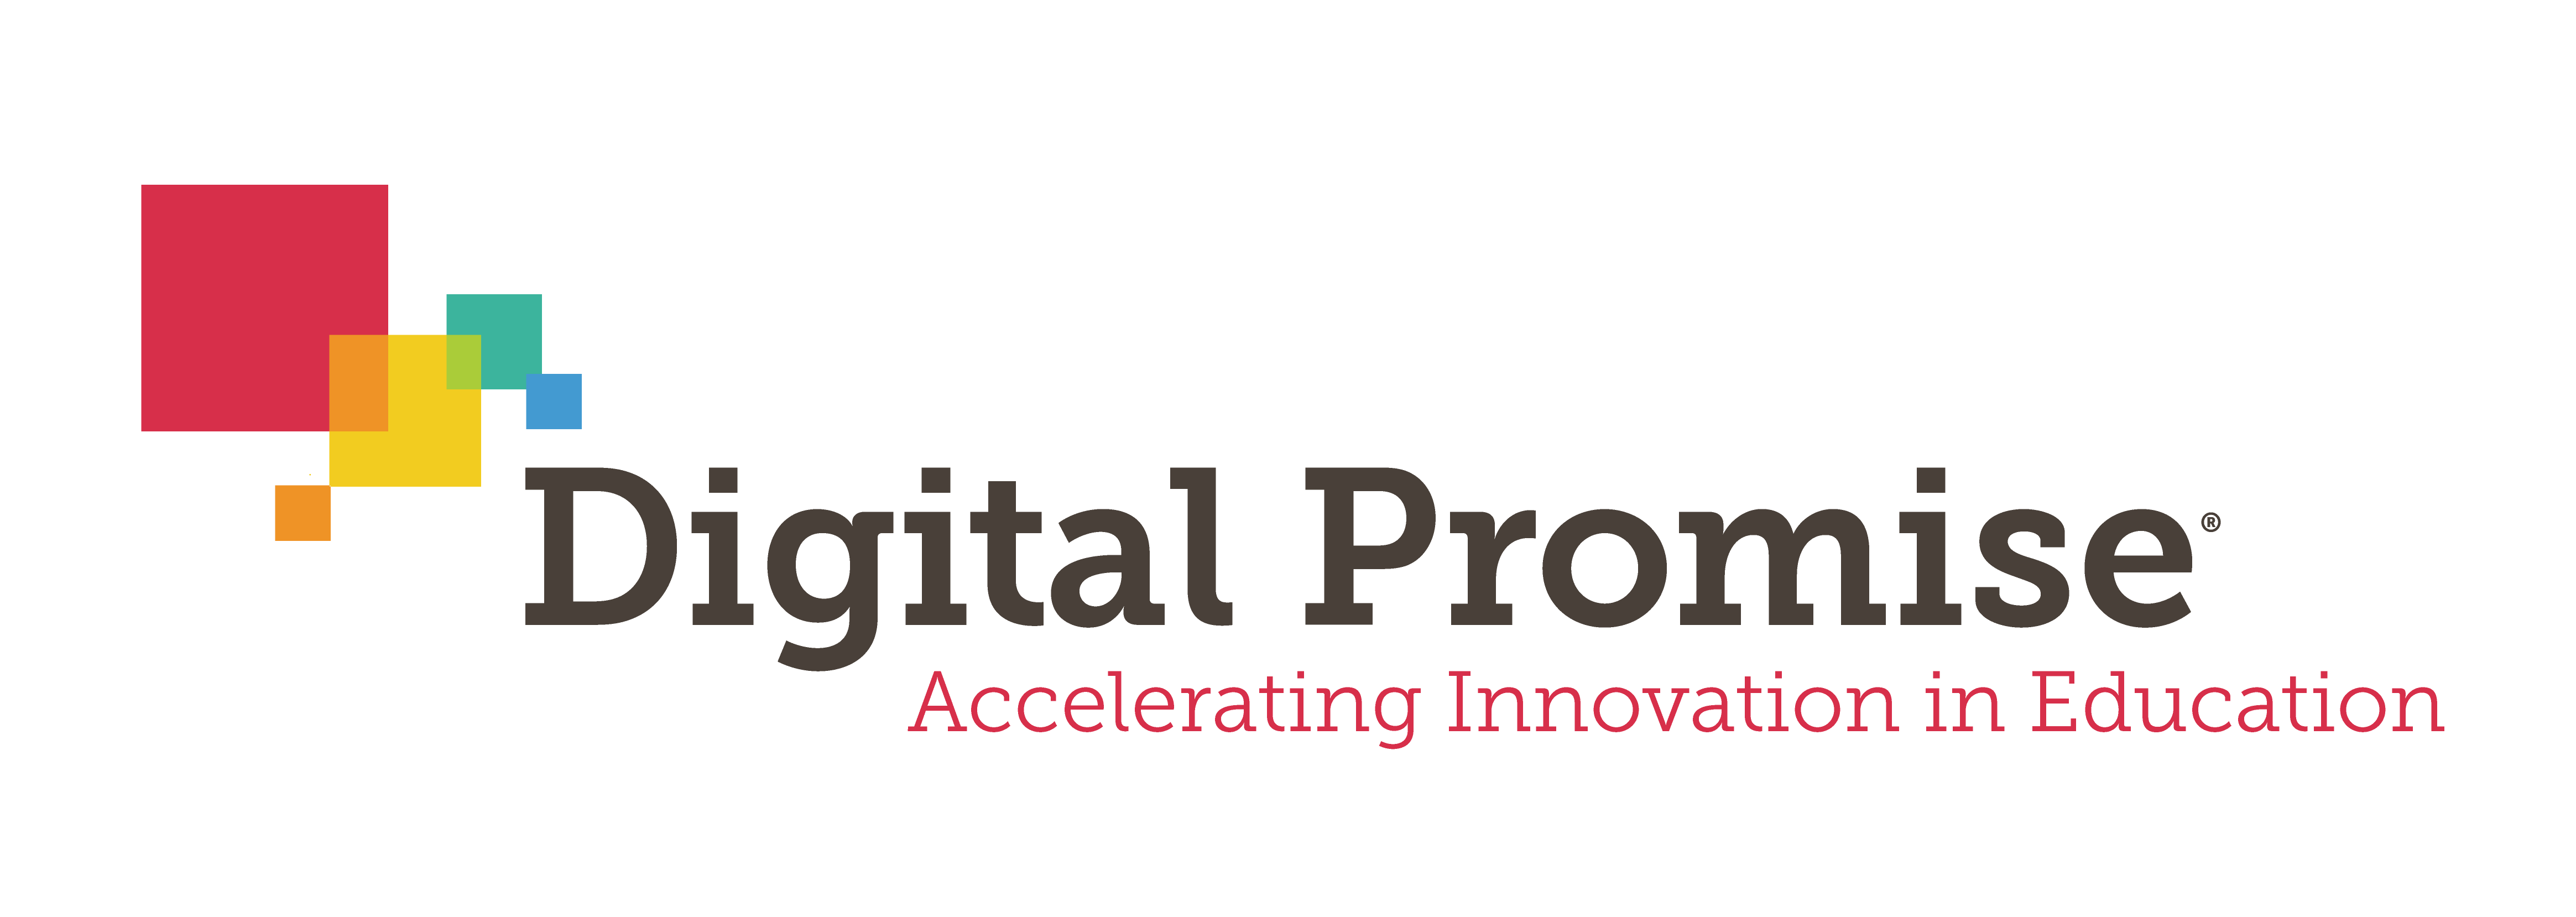 Digital Promise Global